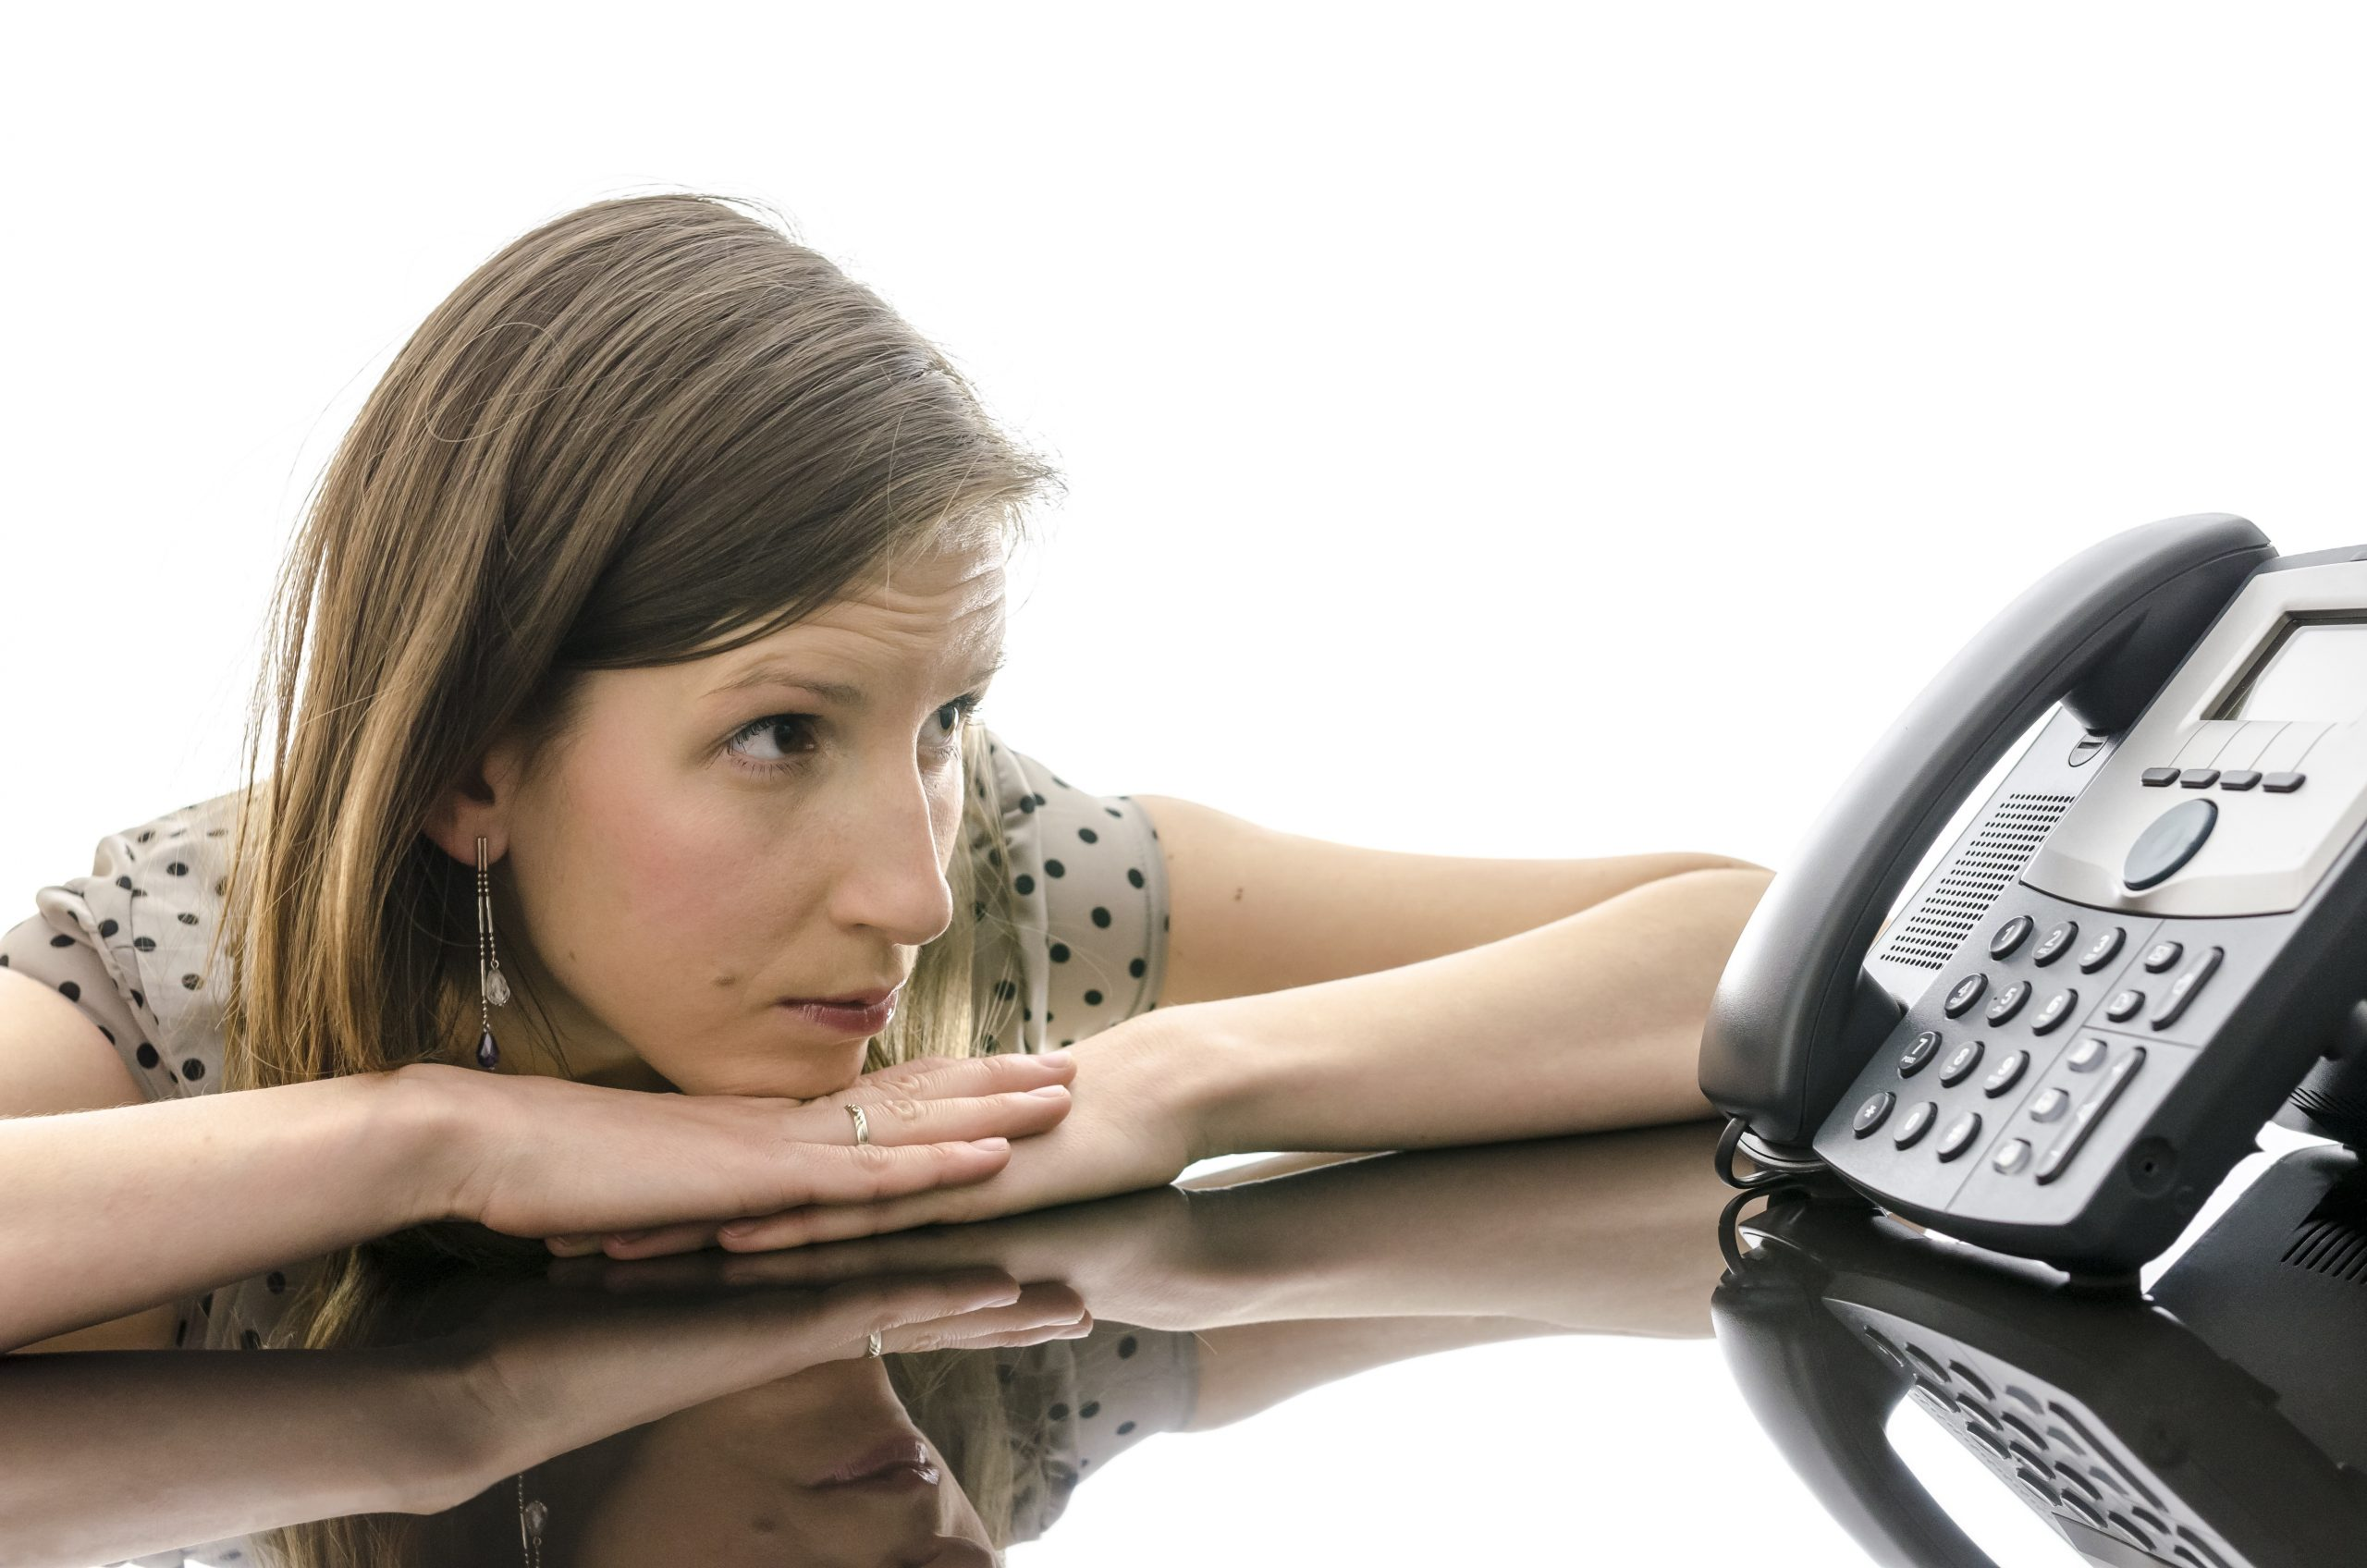 Woman waiting for a phone call while looking at telephone and leaning on a black table with reflection.